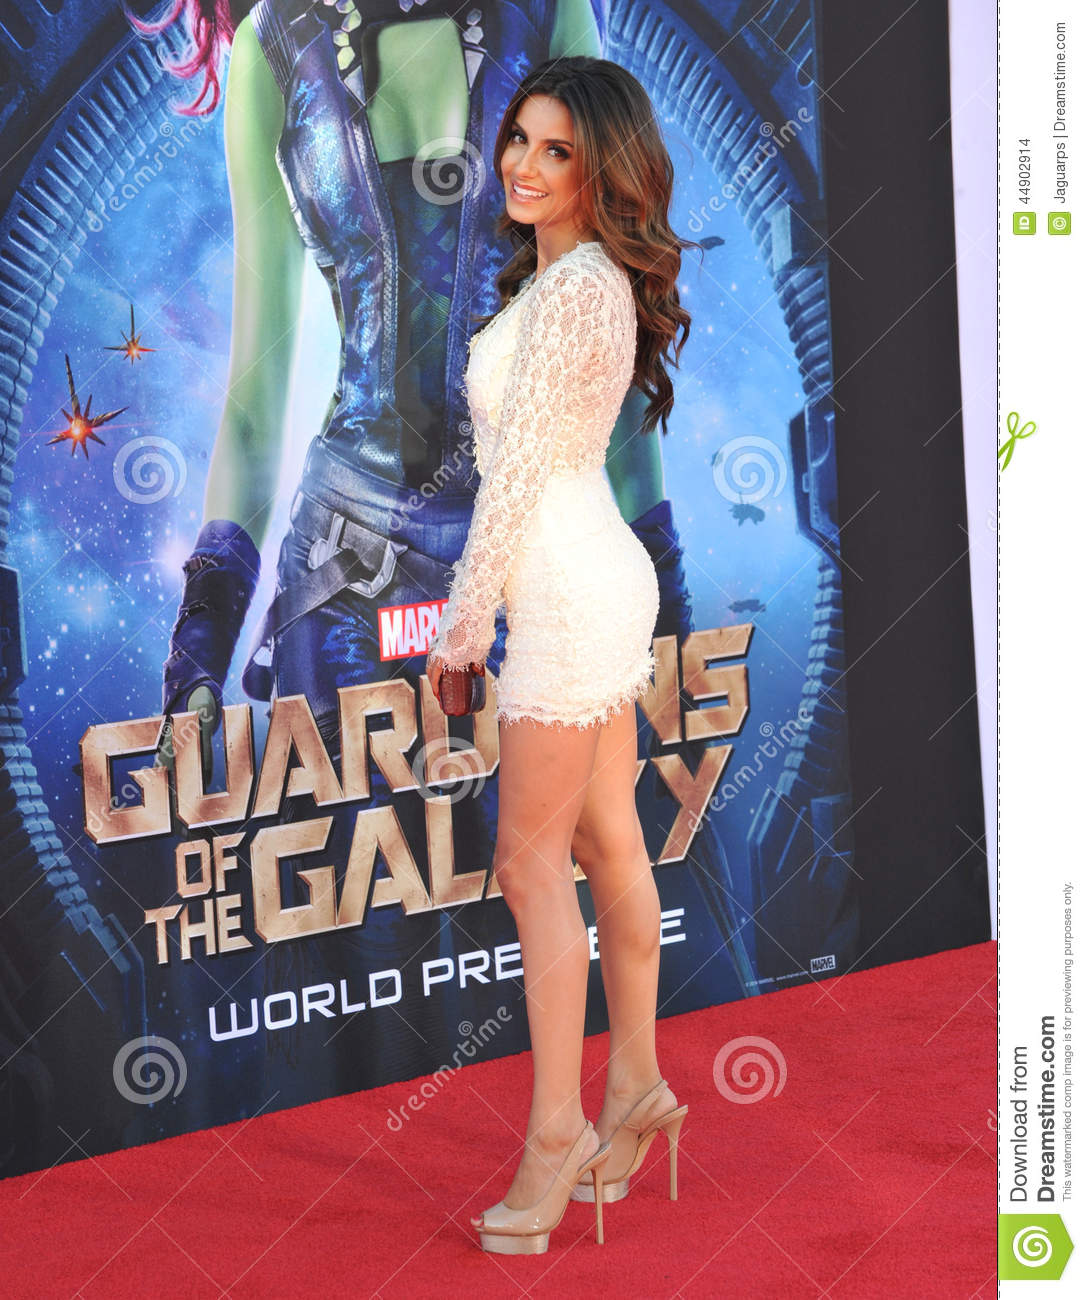 ... of Guardians of the Galaxy at the El Capitan Theatre, Hollywood